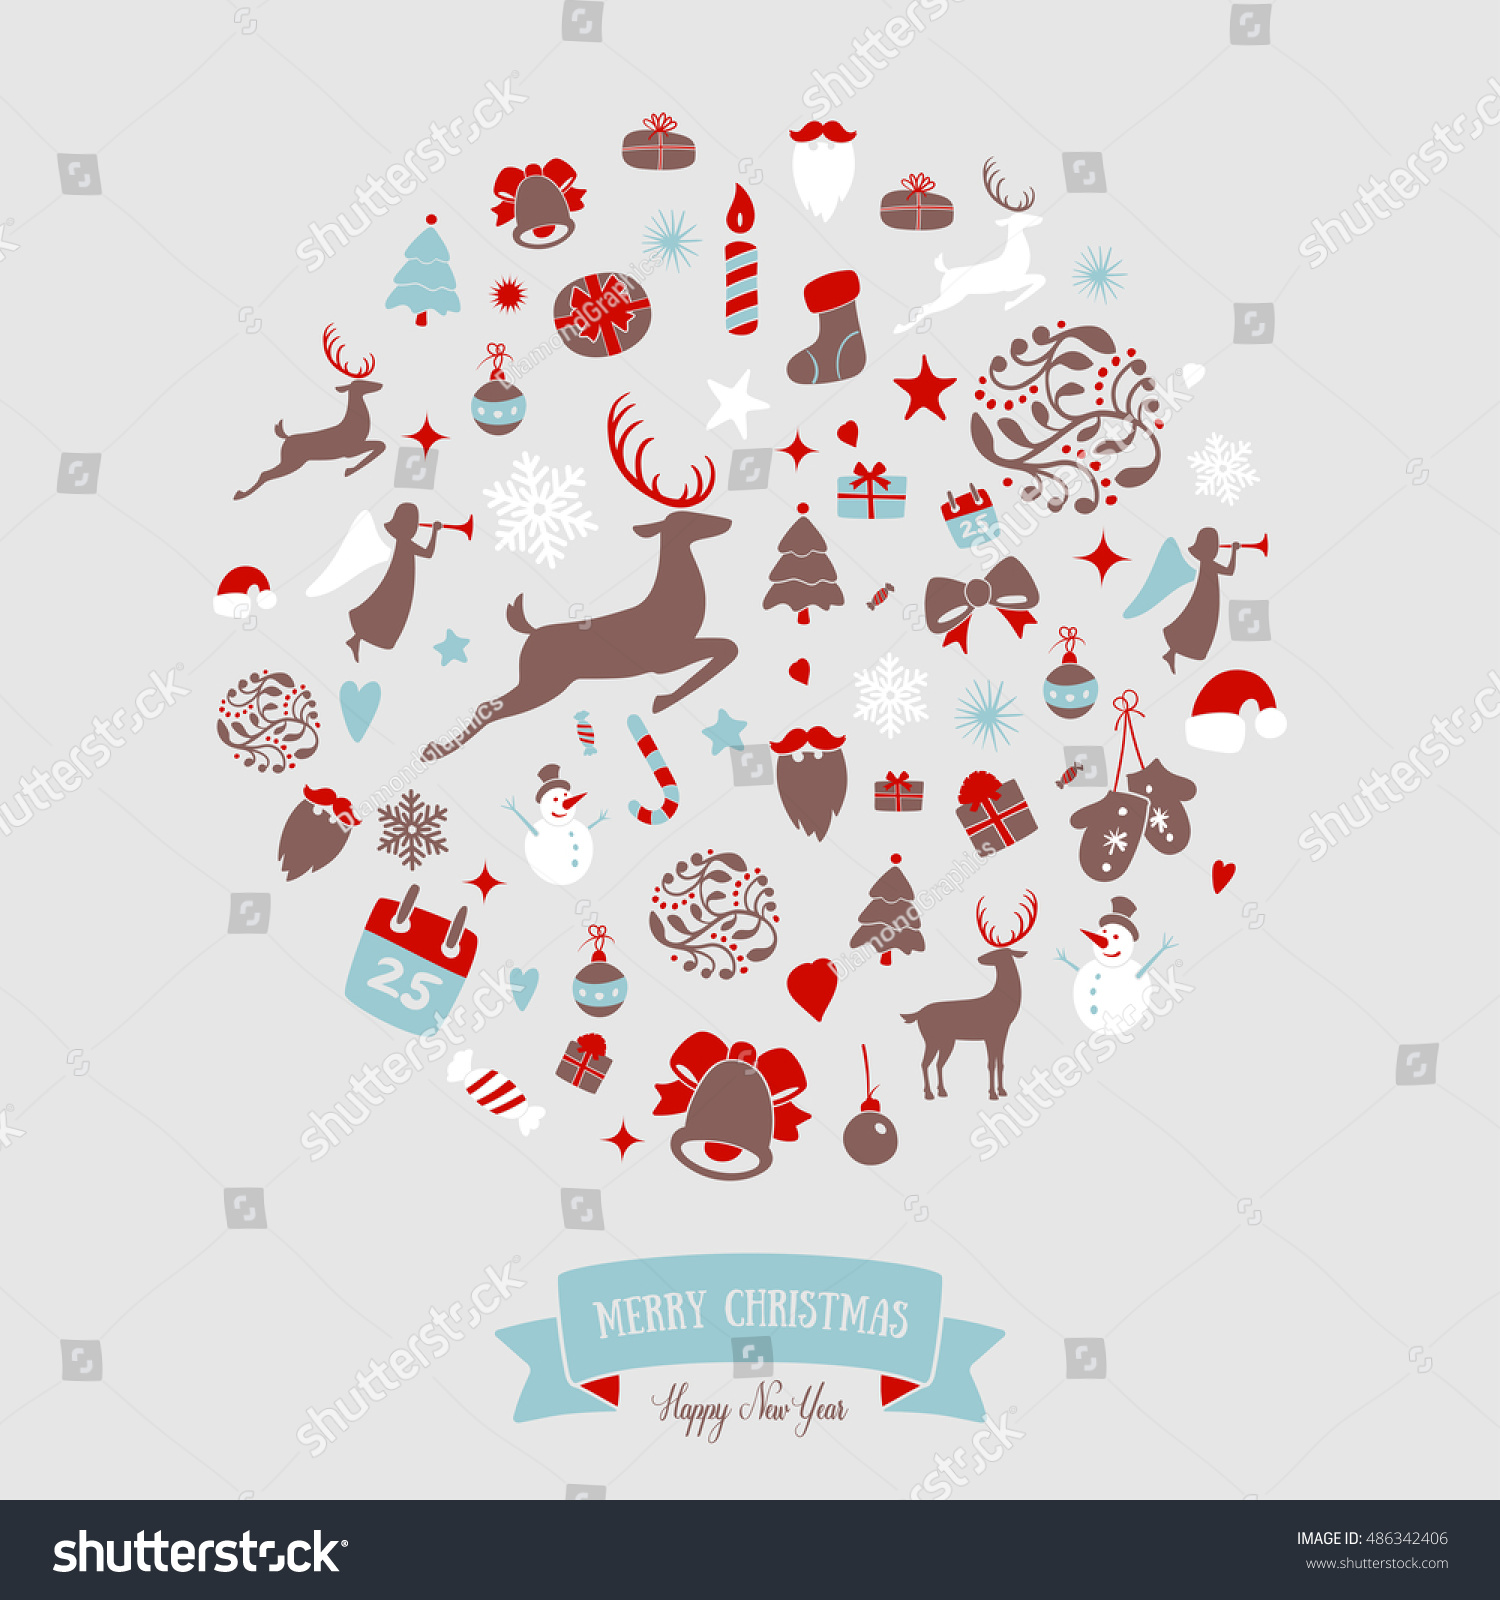 Where To Buy Christmas Decorations Year Round: Christmas Round Ornaments Design Merry Christmas Stock